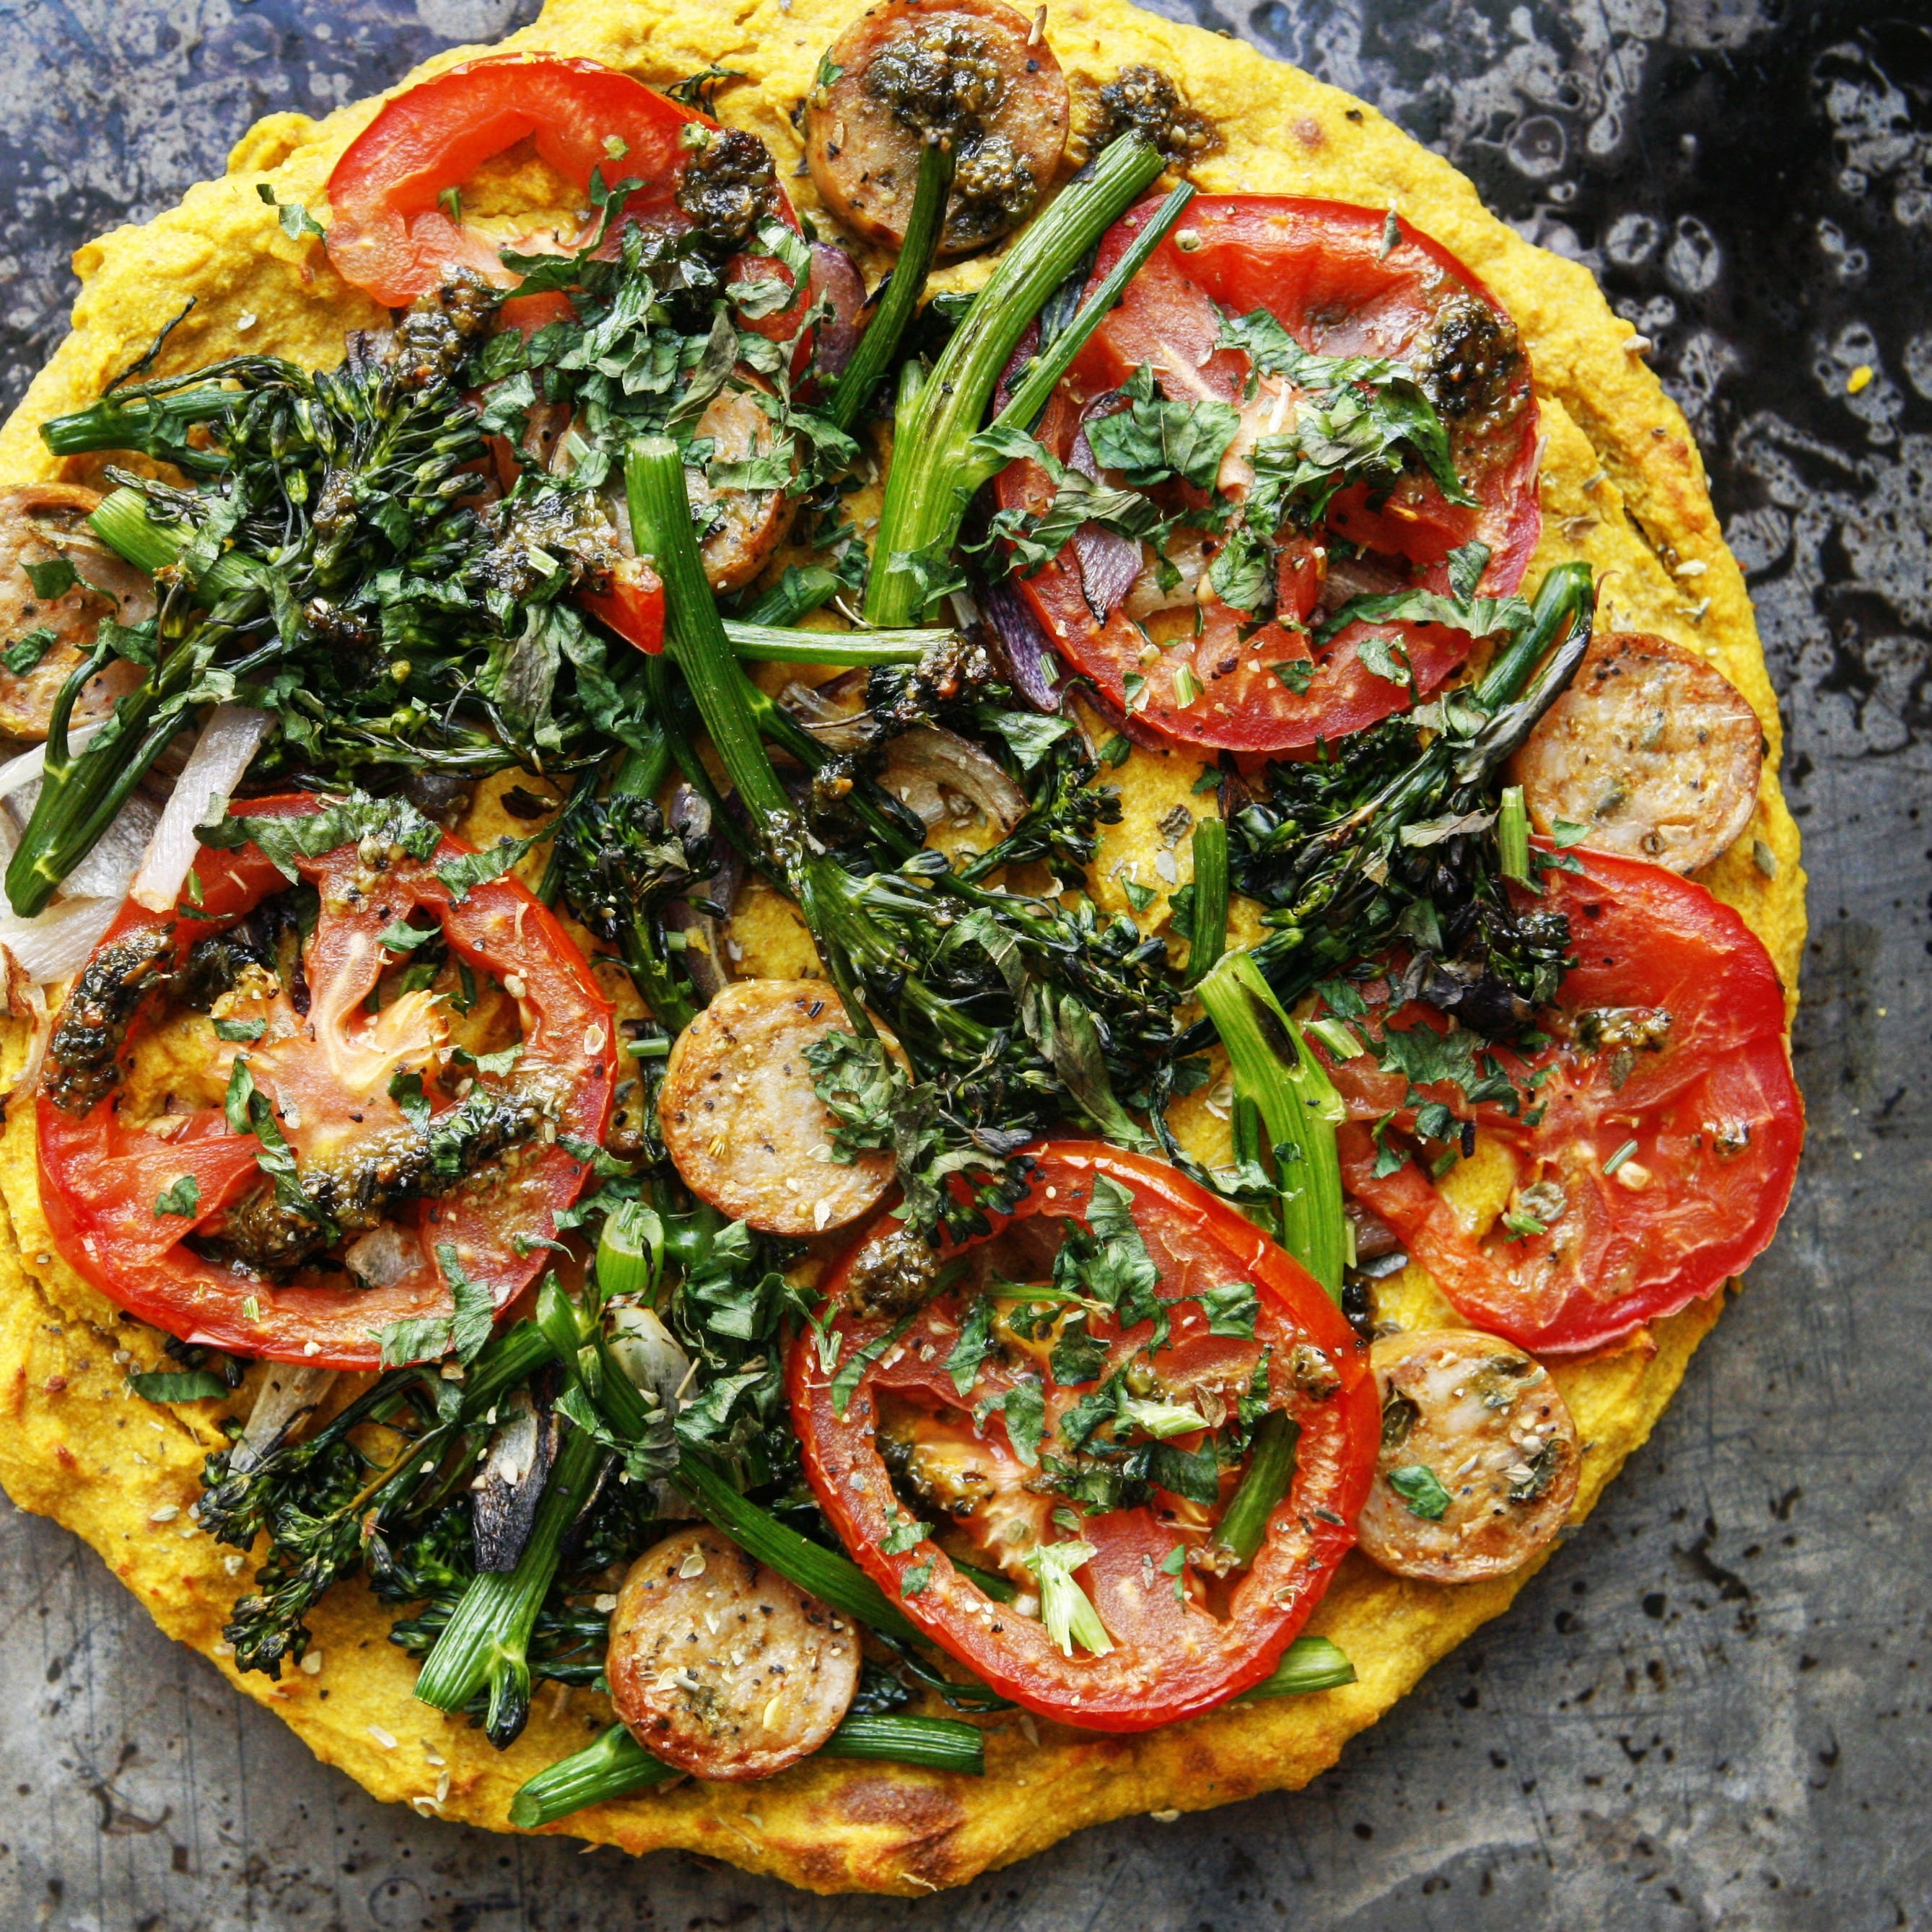 Butternut Squash Pizza Crust (Free of Grains, Dairy and Nuts!)